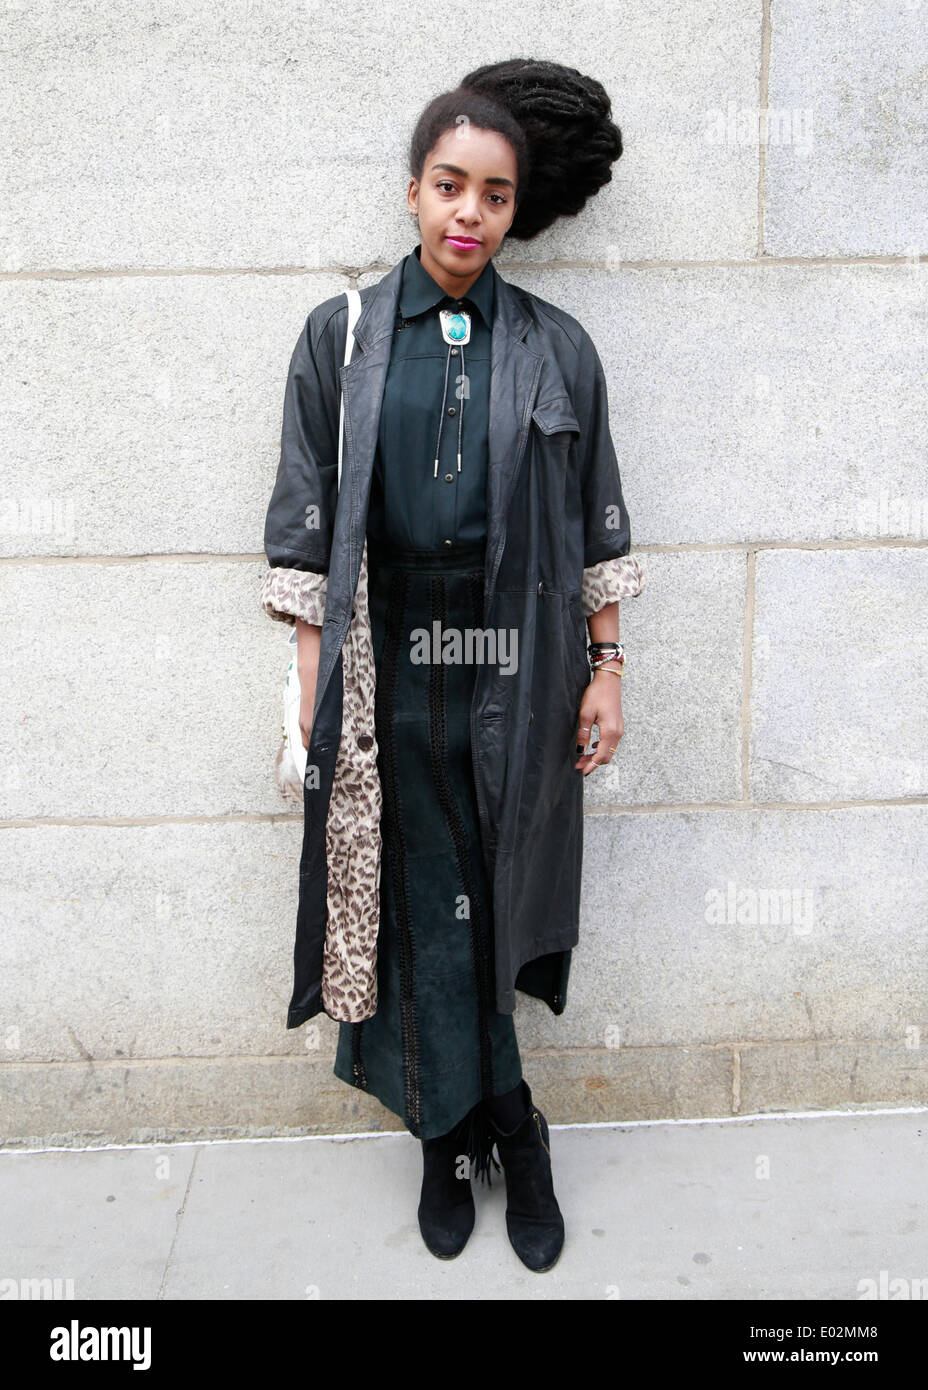 Cipriana Quann strolling in New York City - April 25, 2014 - Photo: Runway Manhattan/Charles Eshelman/picture alliance - Stock Image